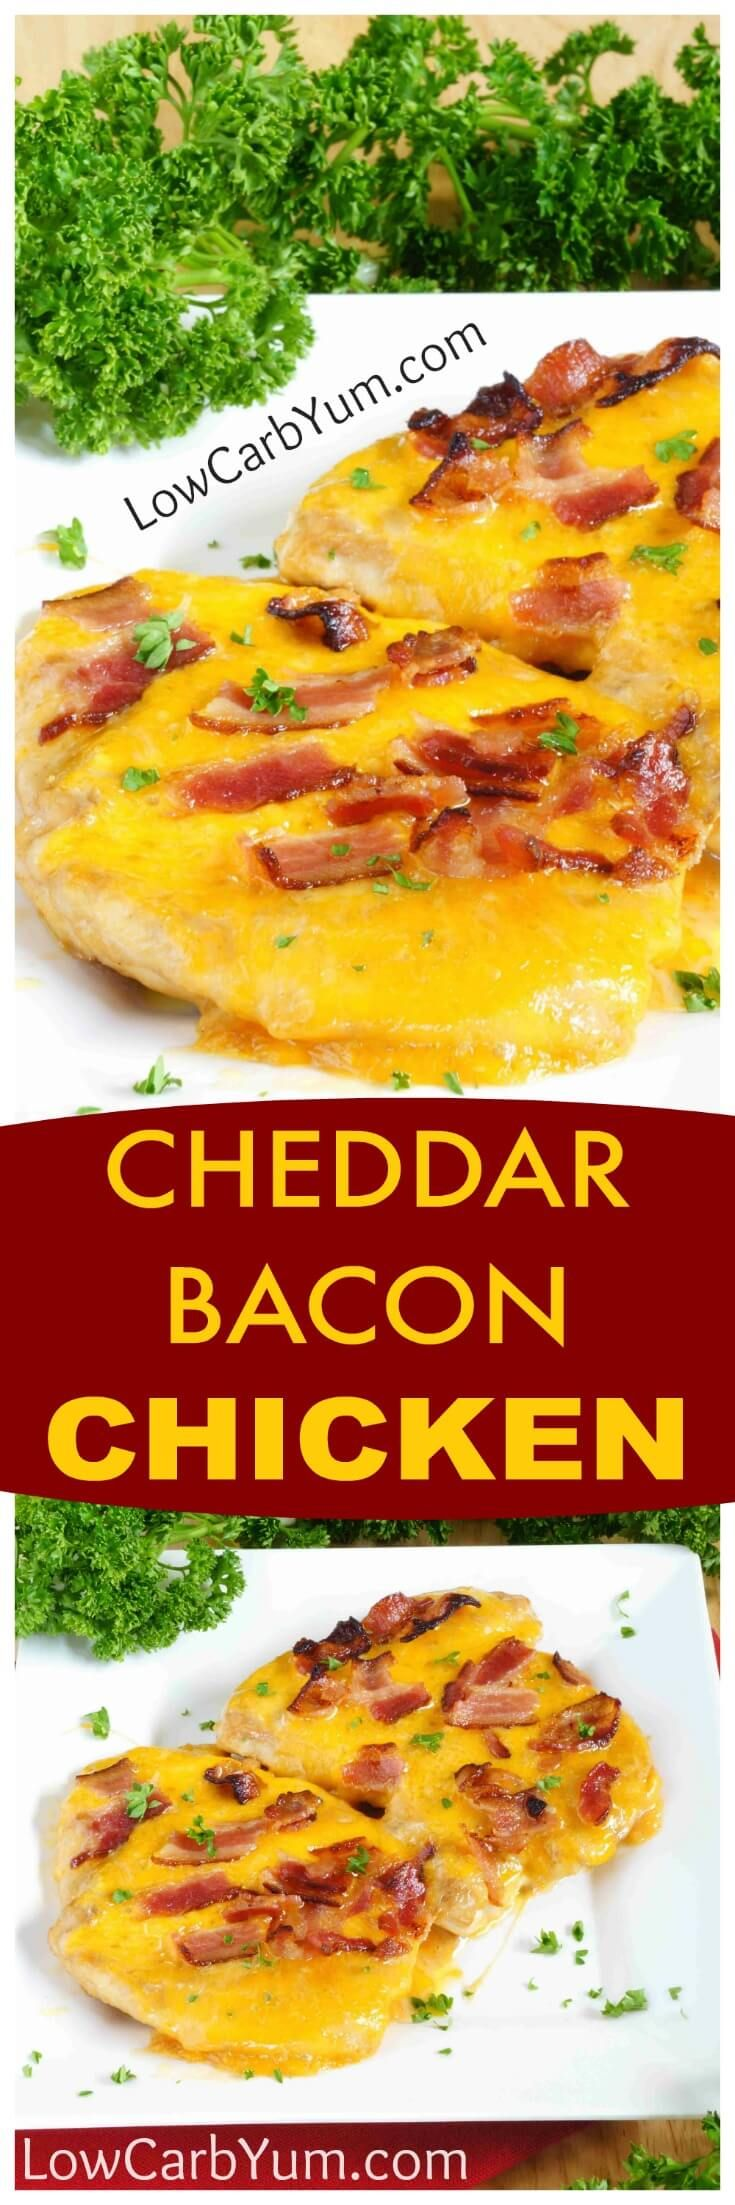 An easy cheddar chicken bacon cheese recipe turns plain chicken into something special. A little teriyaki and ranch dressing enhances the flavor. | LowCarbYum.com